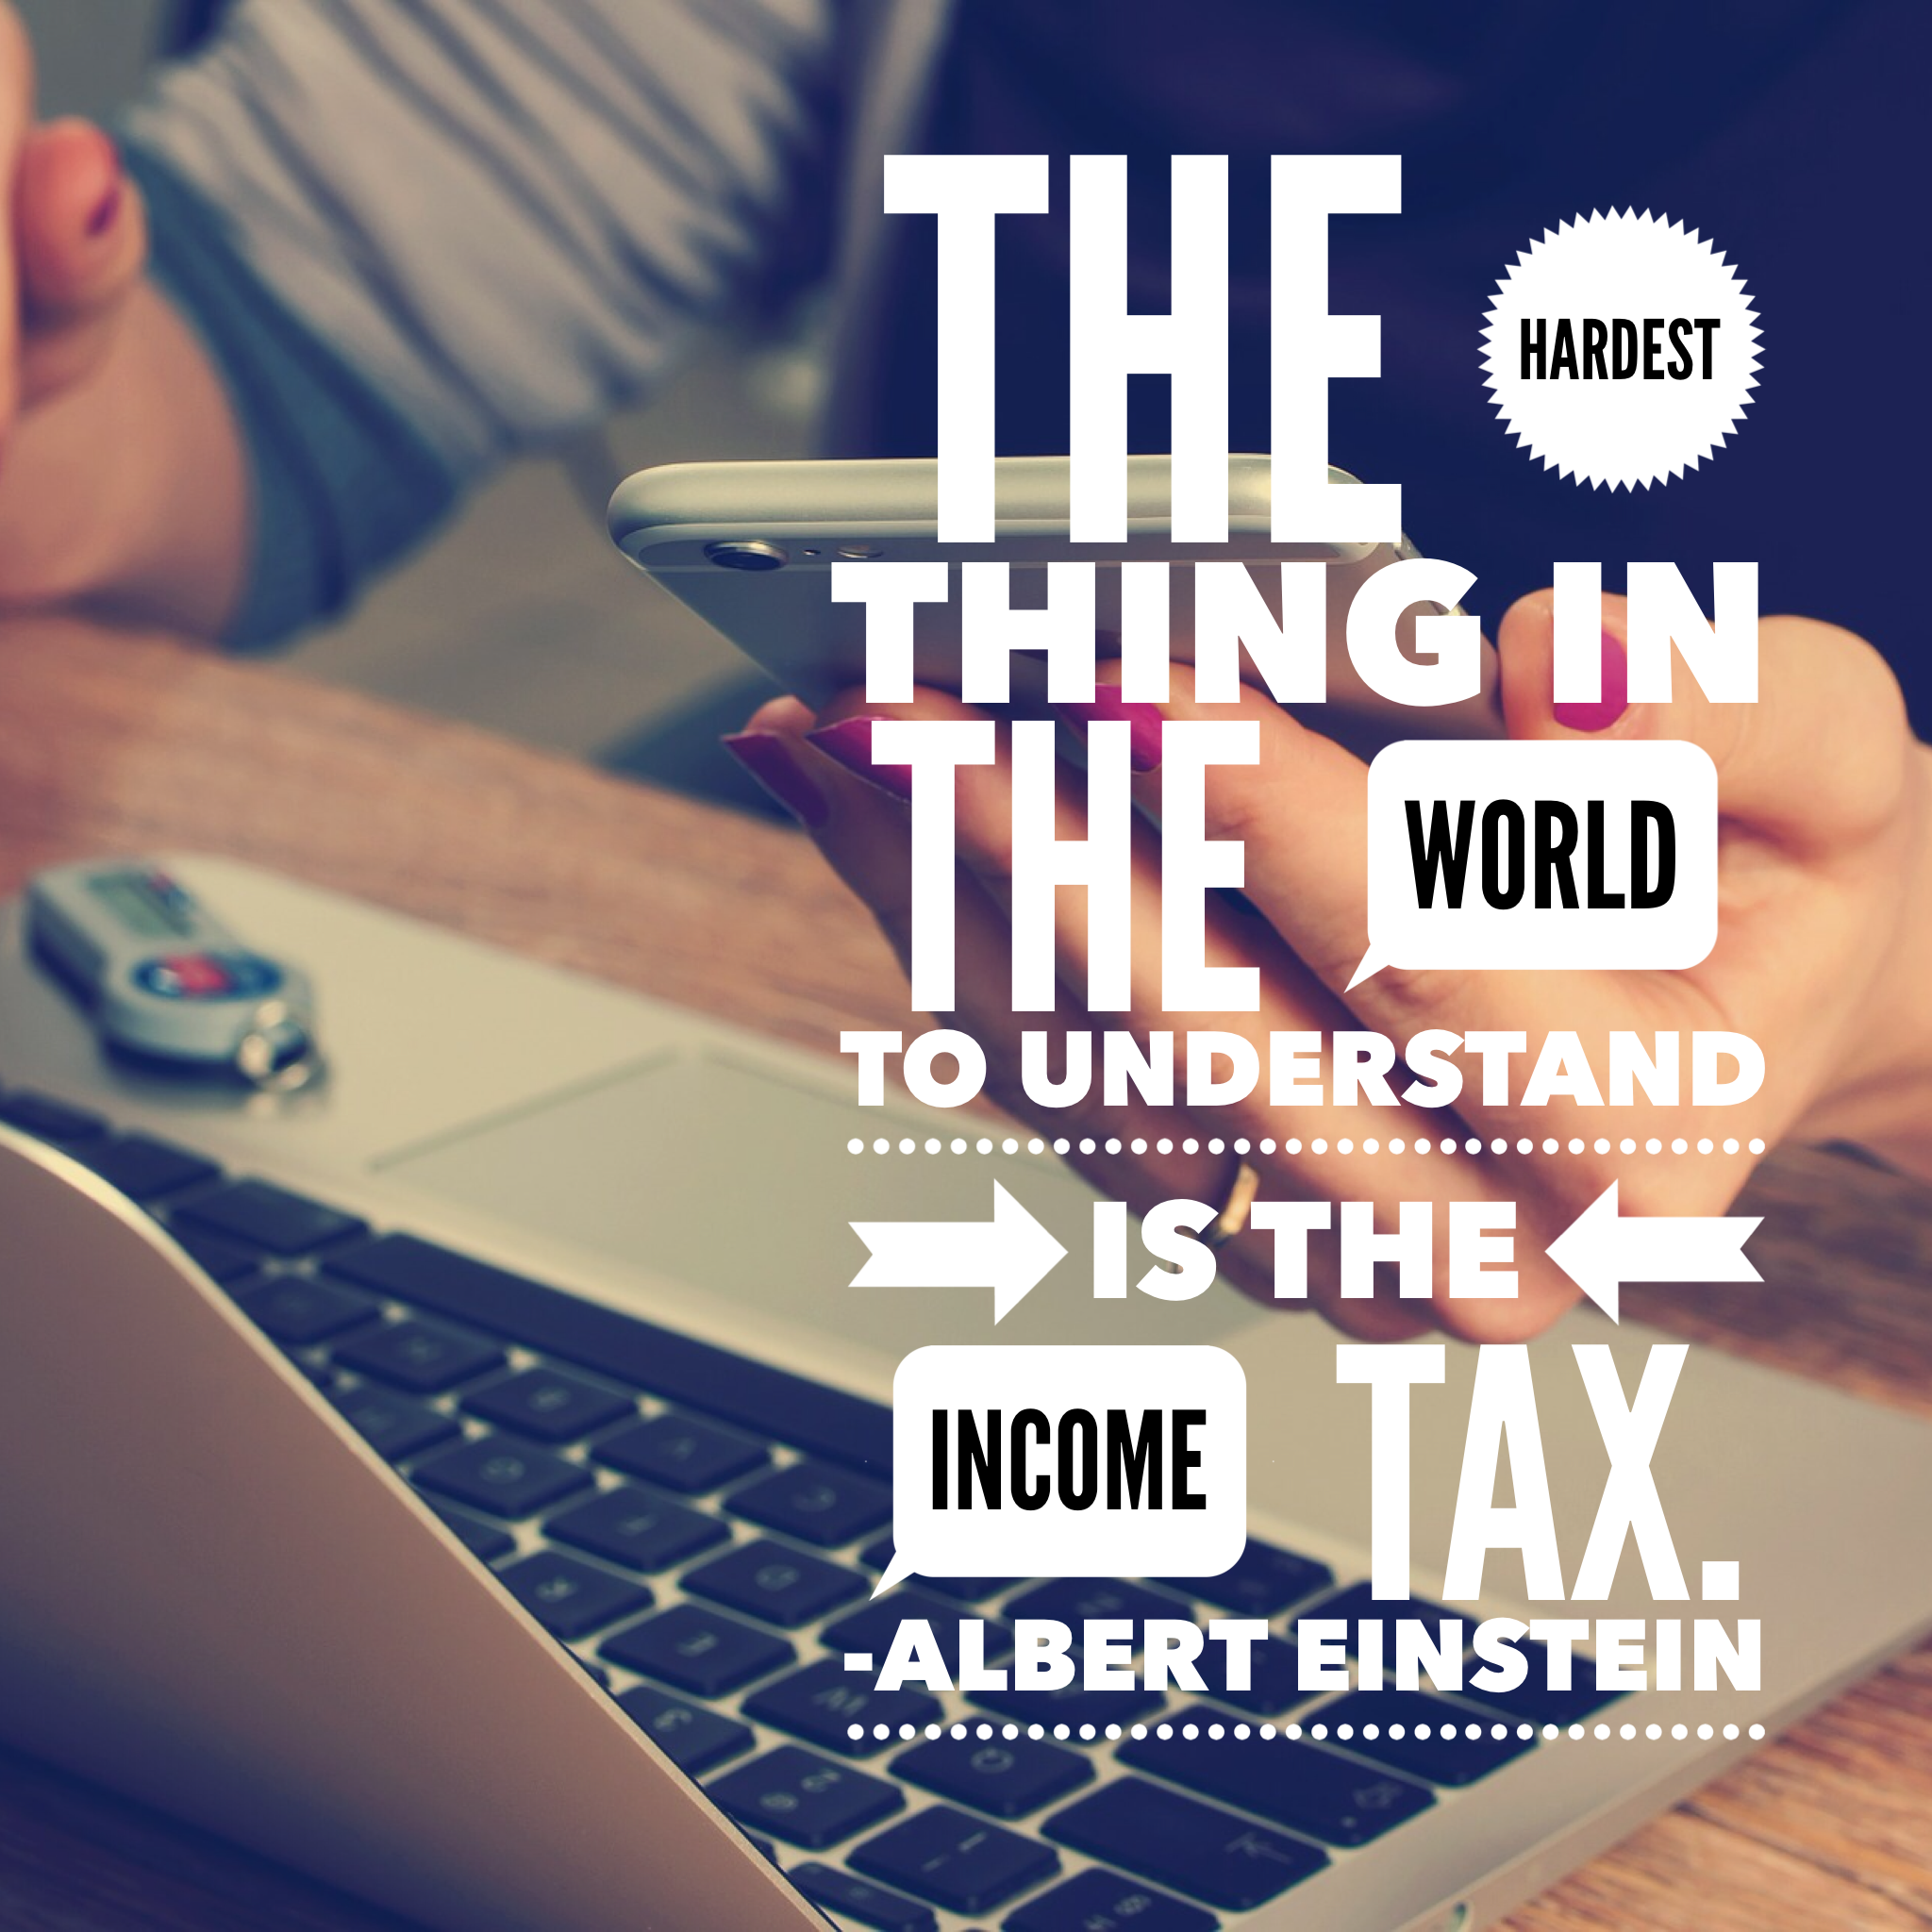 Kaye Swain Roseville CA blogger REALTOR Sharing Einstein quote on taxes